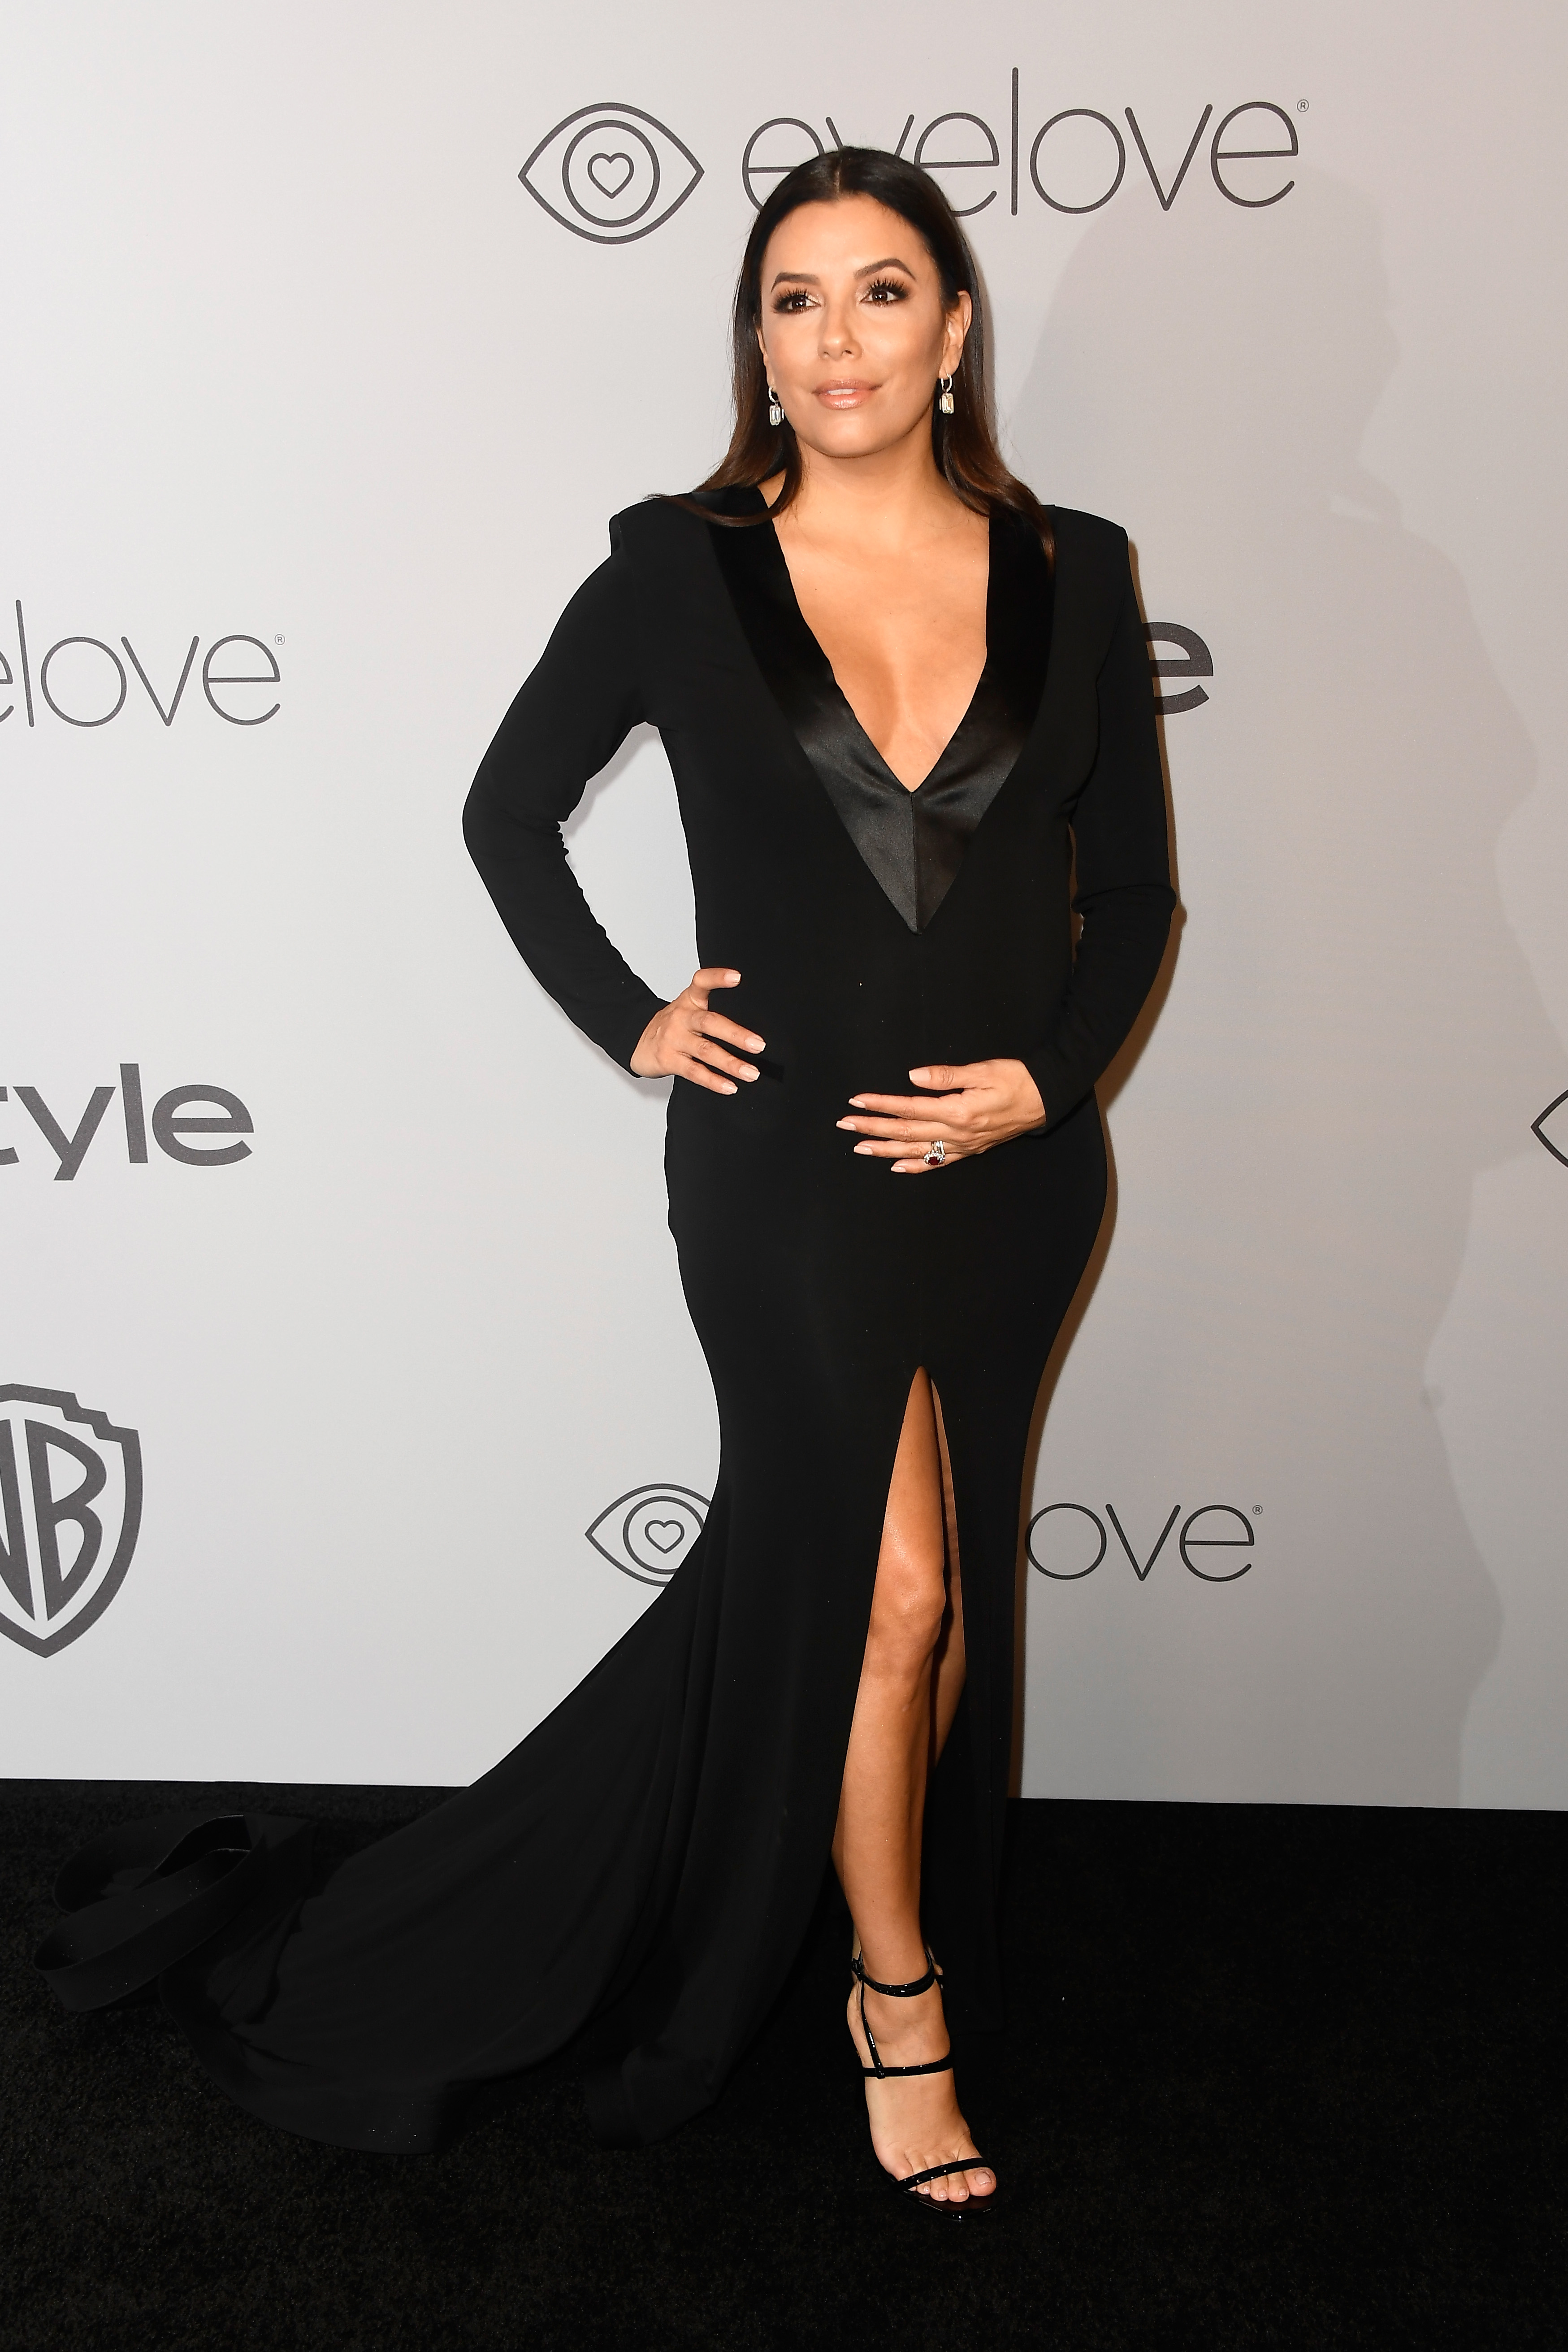 BEVERLY HILLS, CA - JANUARY 07:  Actor Eva Longoria attends 19th Annual Post-Golden Globes Party hosted by Warner Bros. Pictures and InStyle at The Beverly Hilton Hotel on January 7, 2018 in Beverly Hills, California.  (Photo by Frazer Harrison/Getty Images)